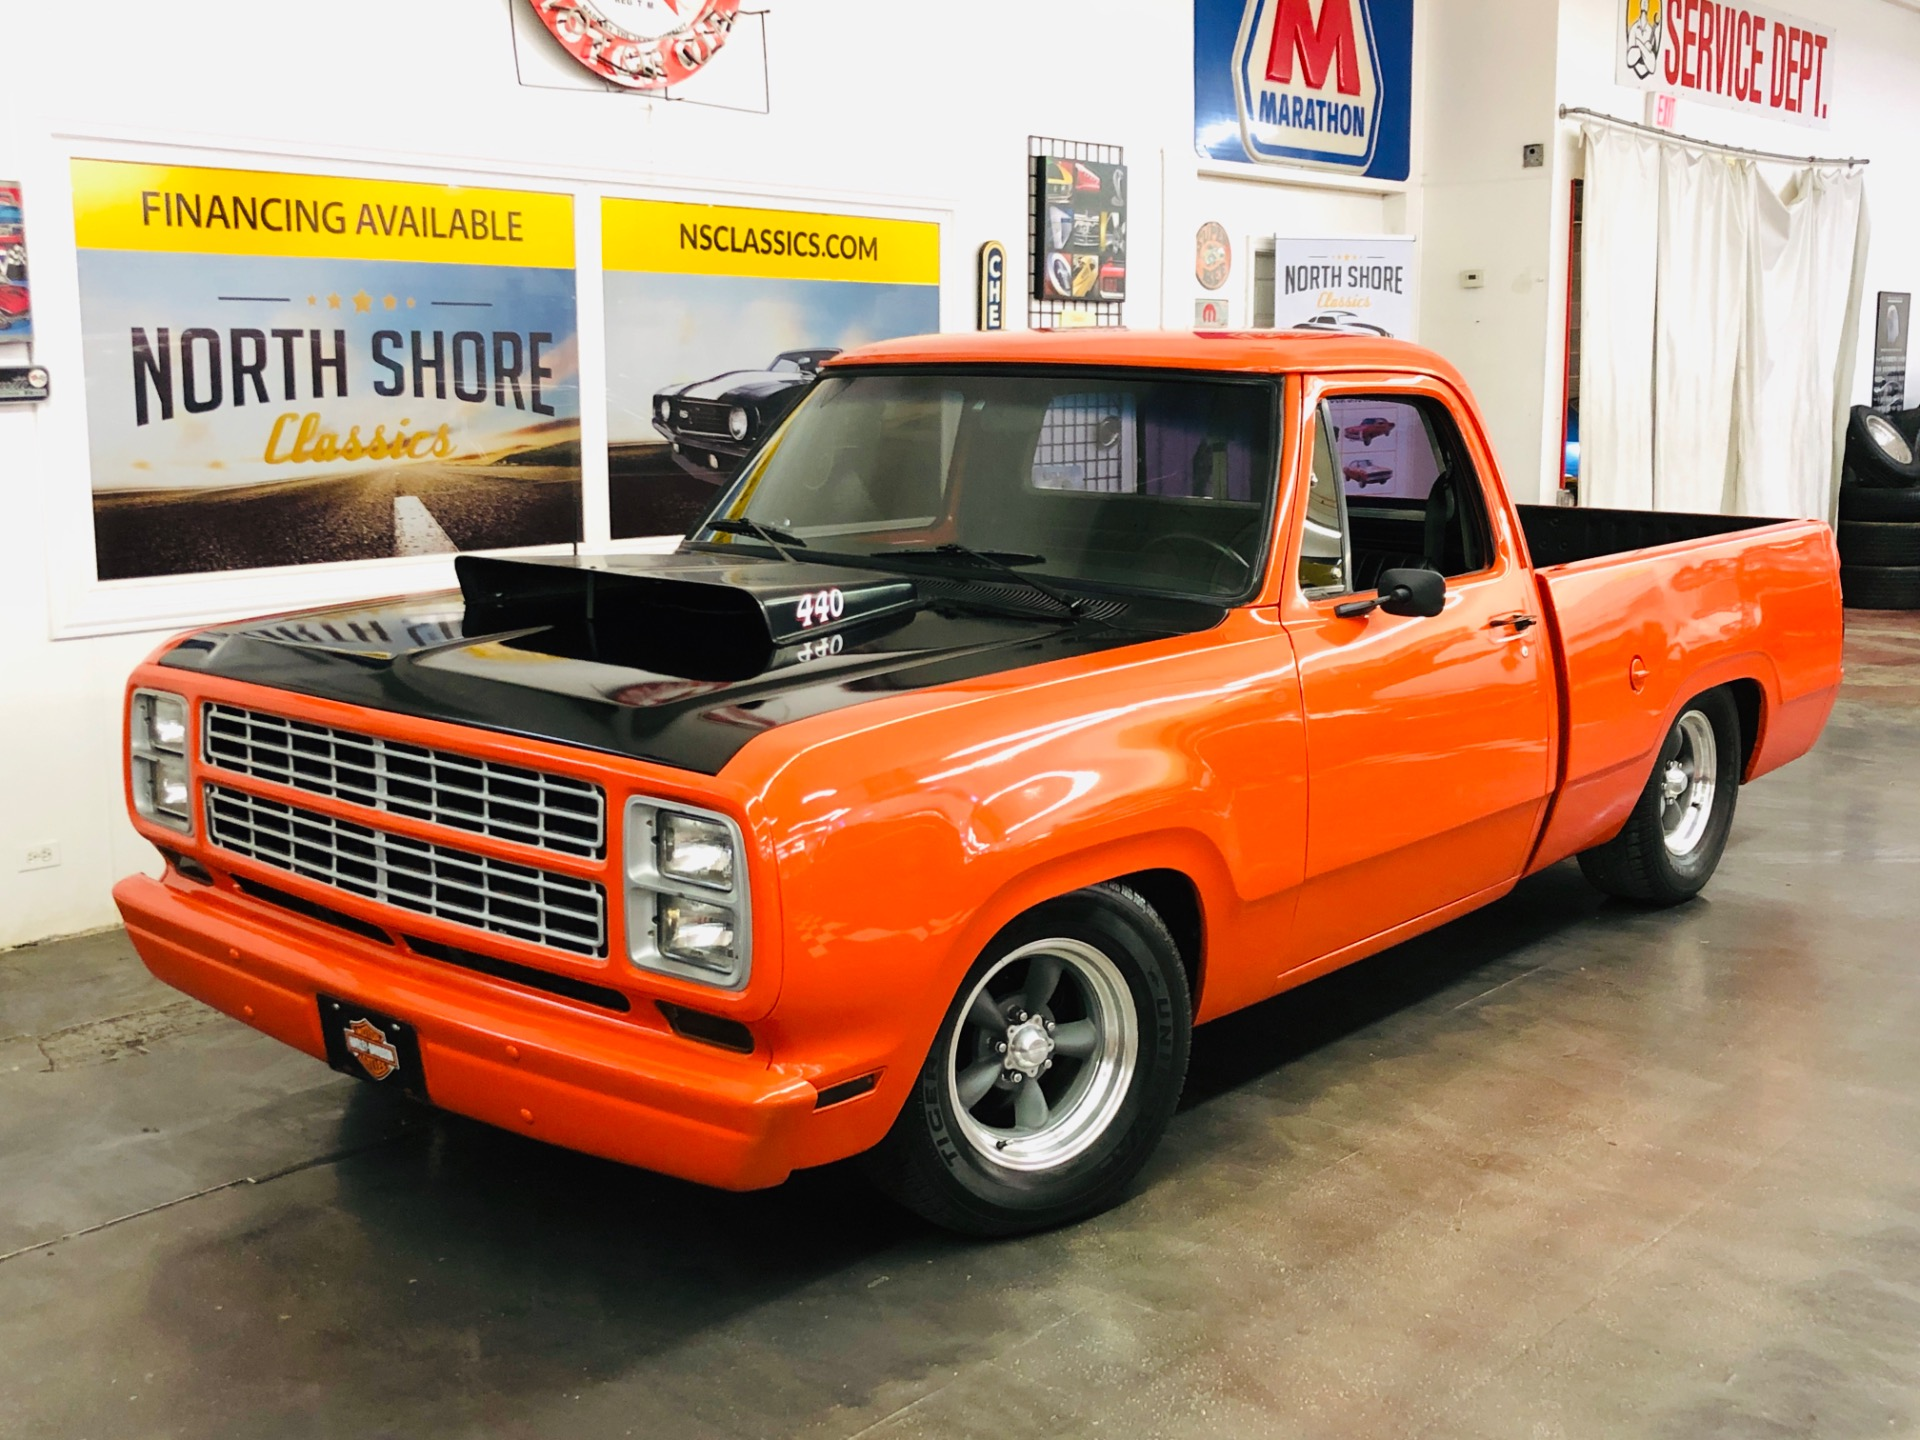 Used 1980 Dodge Pickup - 440 BIG BLOCK DODGE V8 - FAST CLEAN TRUCK - SEE VIDEO | Mundelein, IL